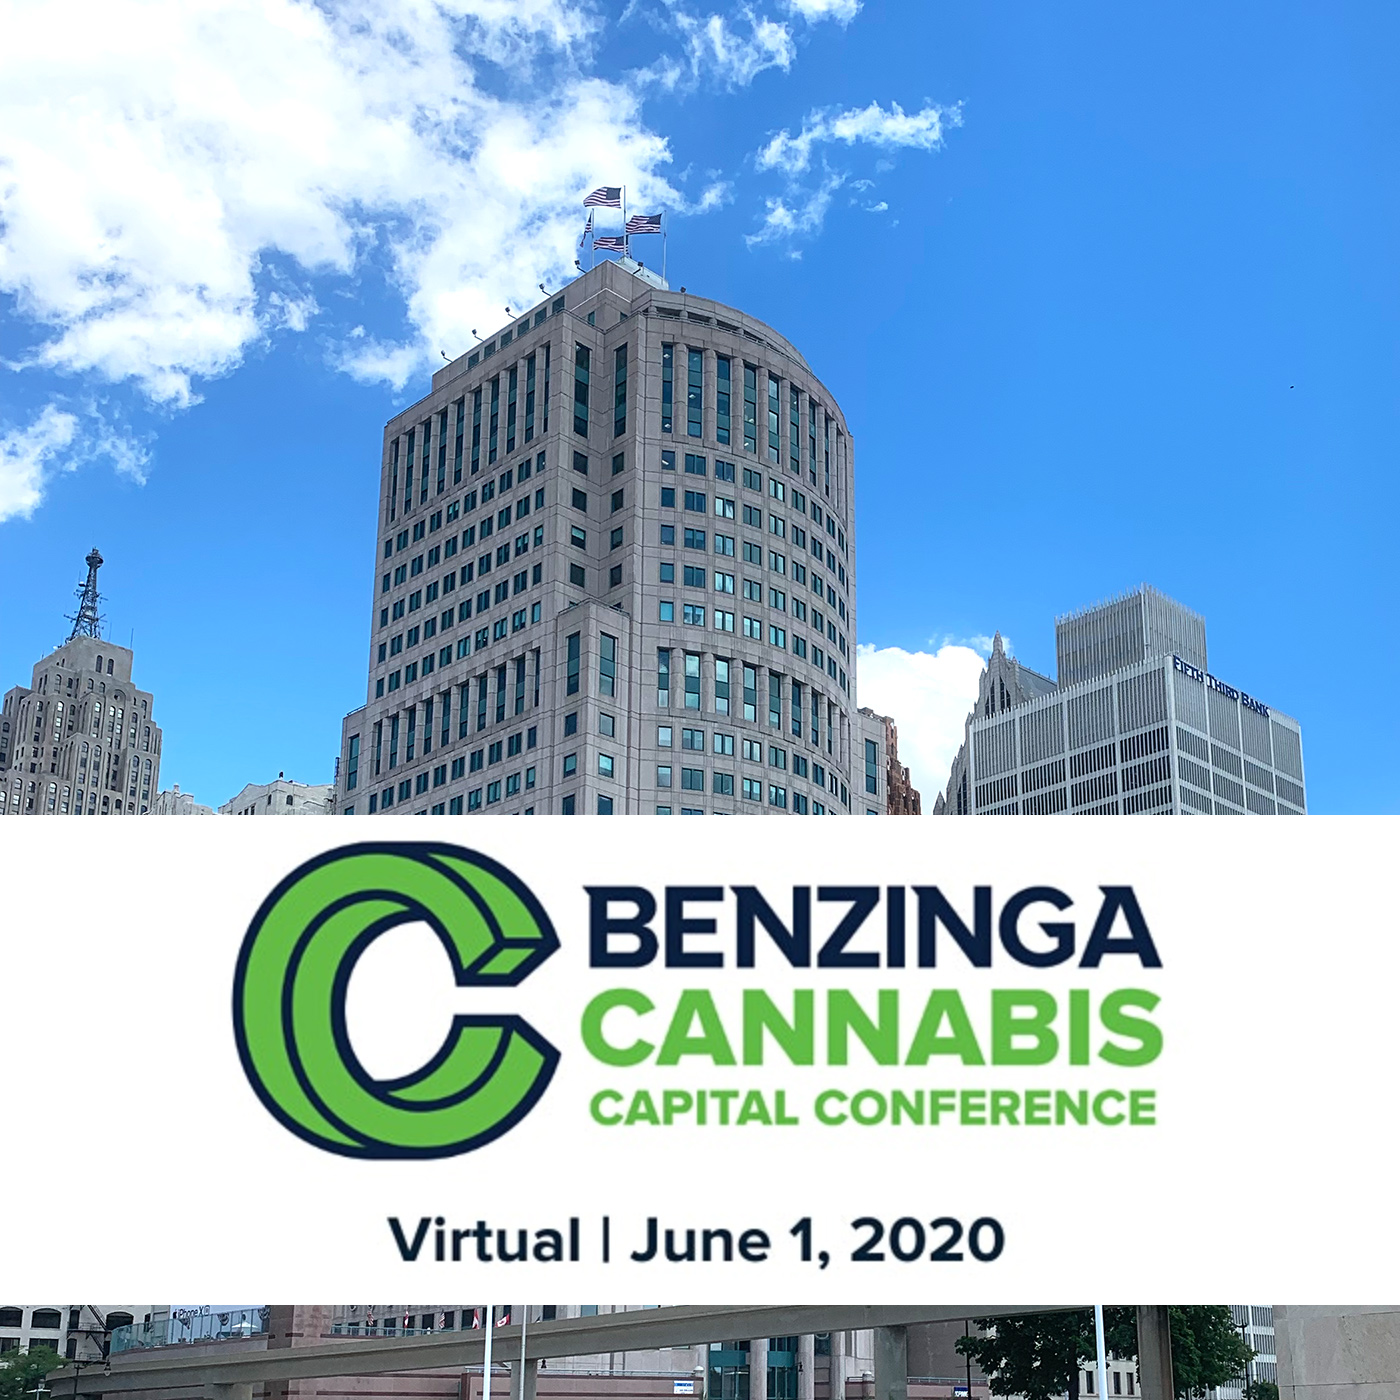 Benzinga Virtual Cannabis Capital Conference 2020